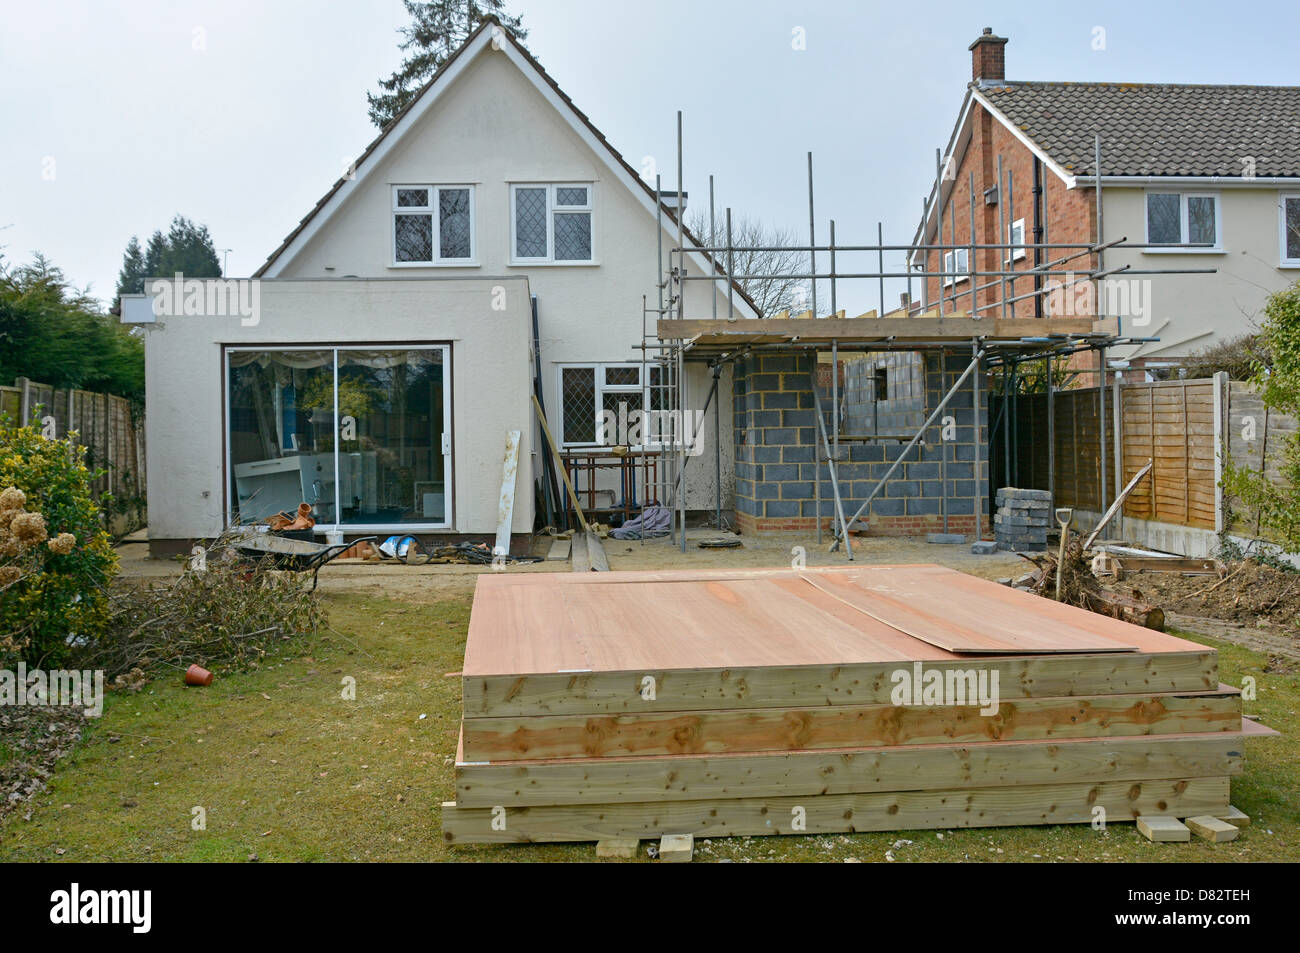 Timber Frame Prefabricated Panels For First Floor